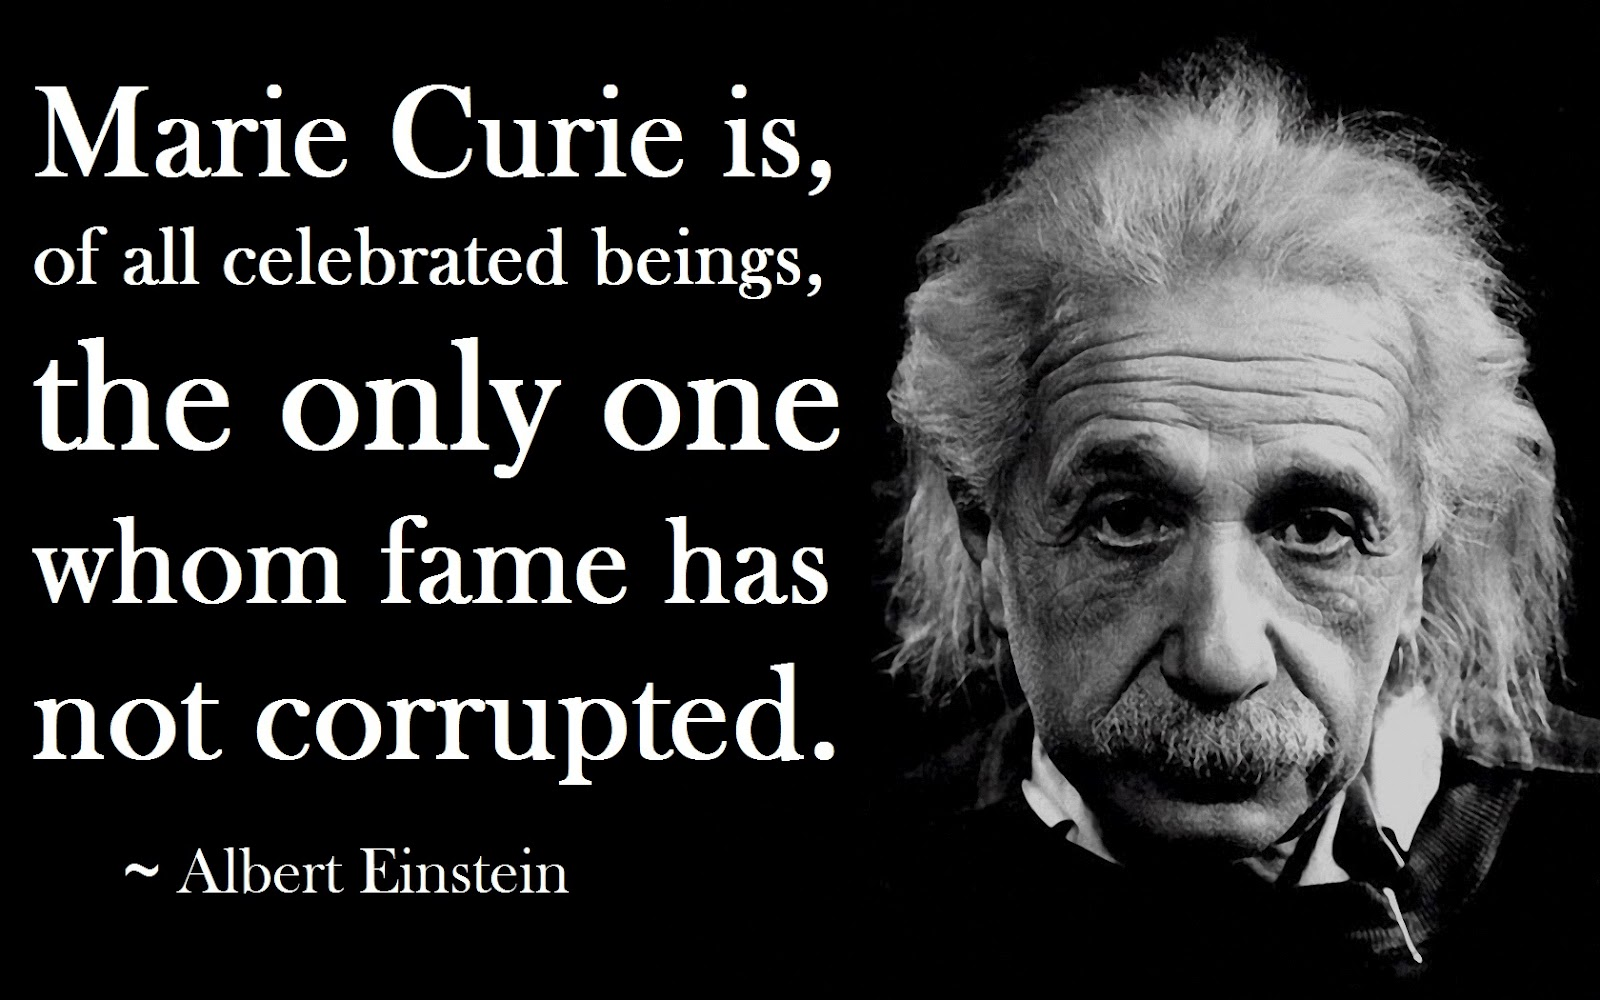 Marie Curie's quotes, famous and not much - QuotationOf . COM